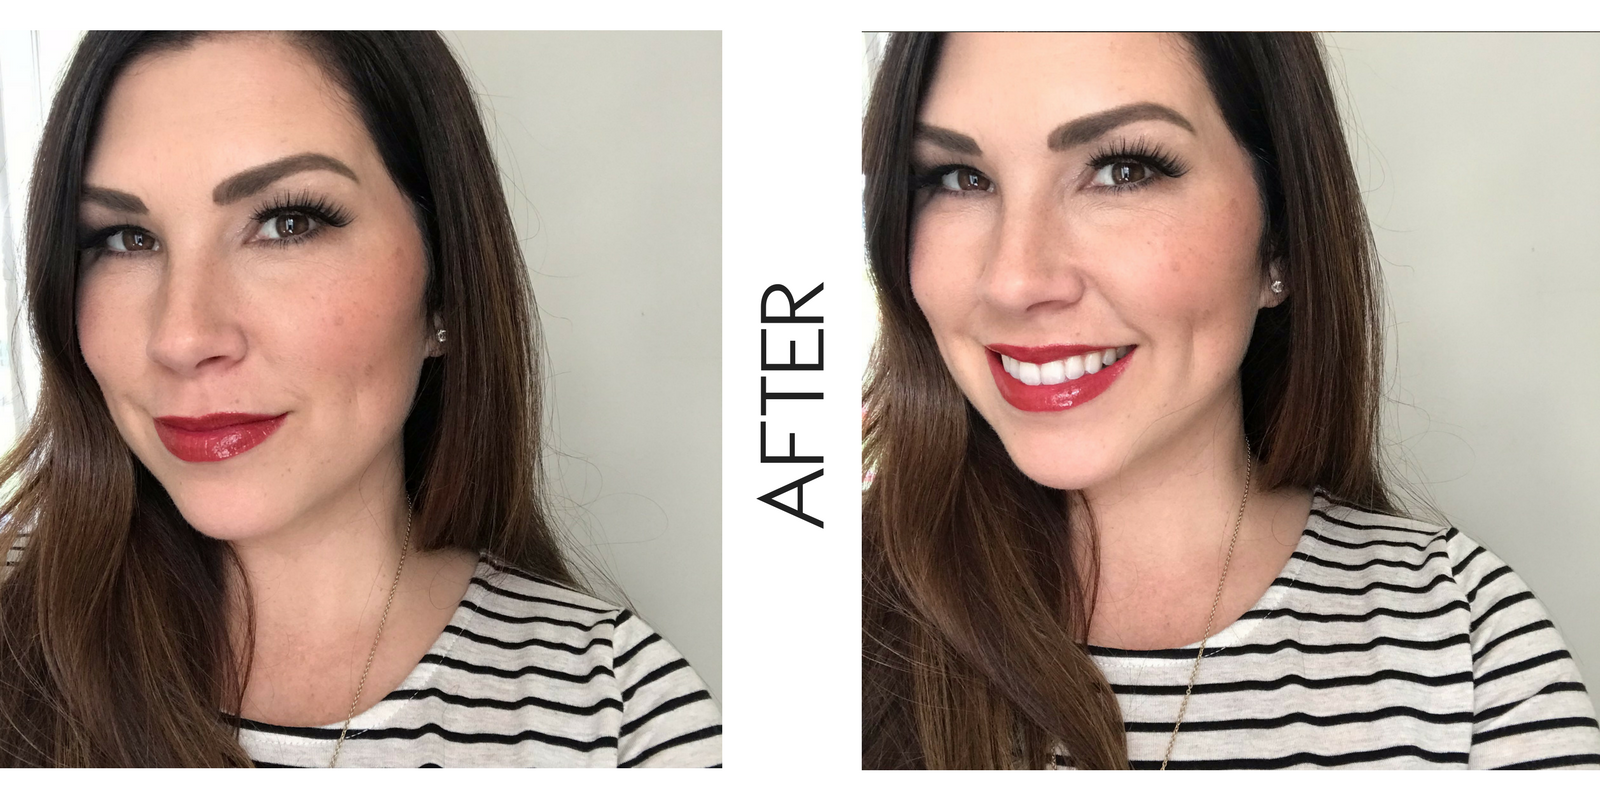 I'm dishing out the details on my very first experience with botox and lip fillers on the blog! Plus, sharing my before and after photos!